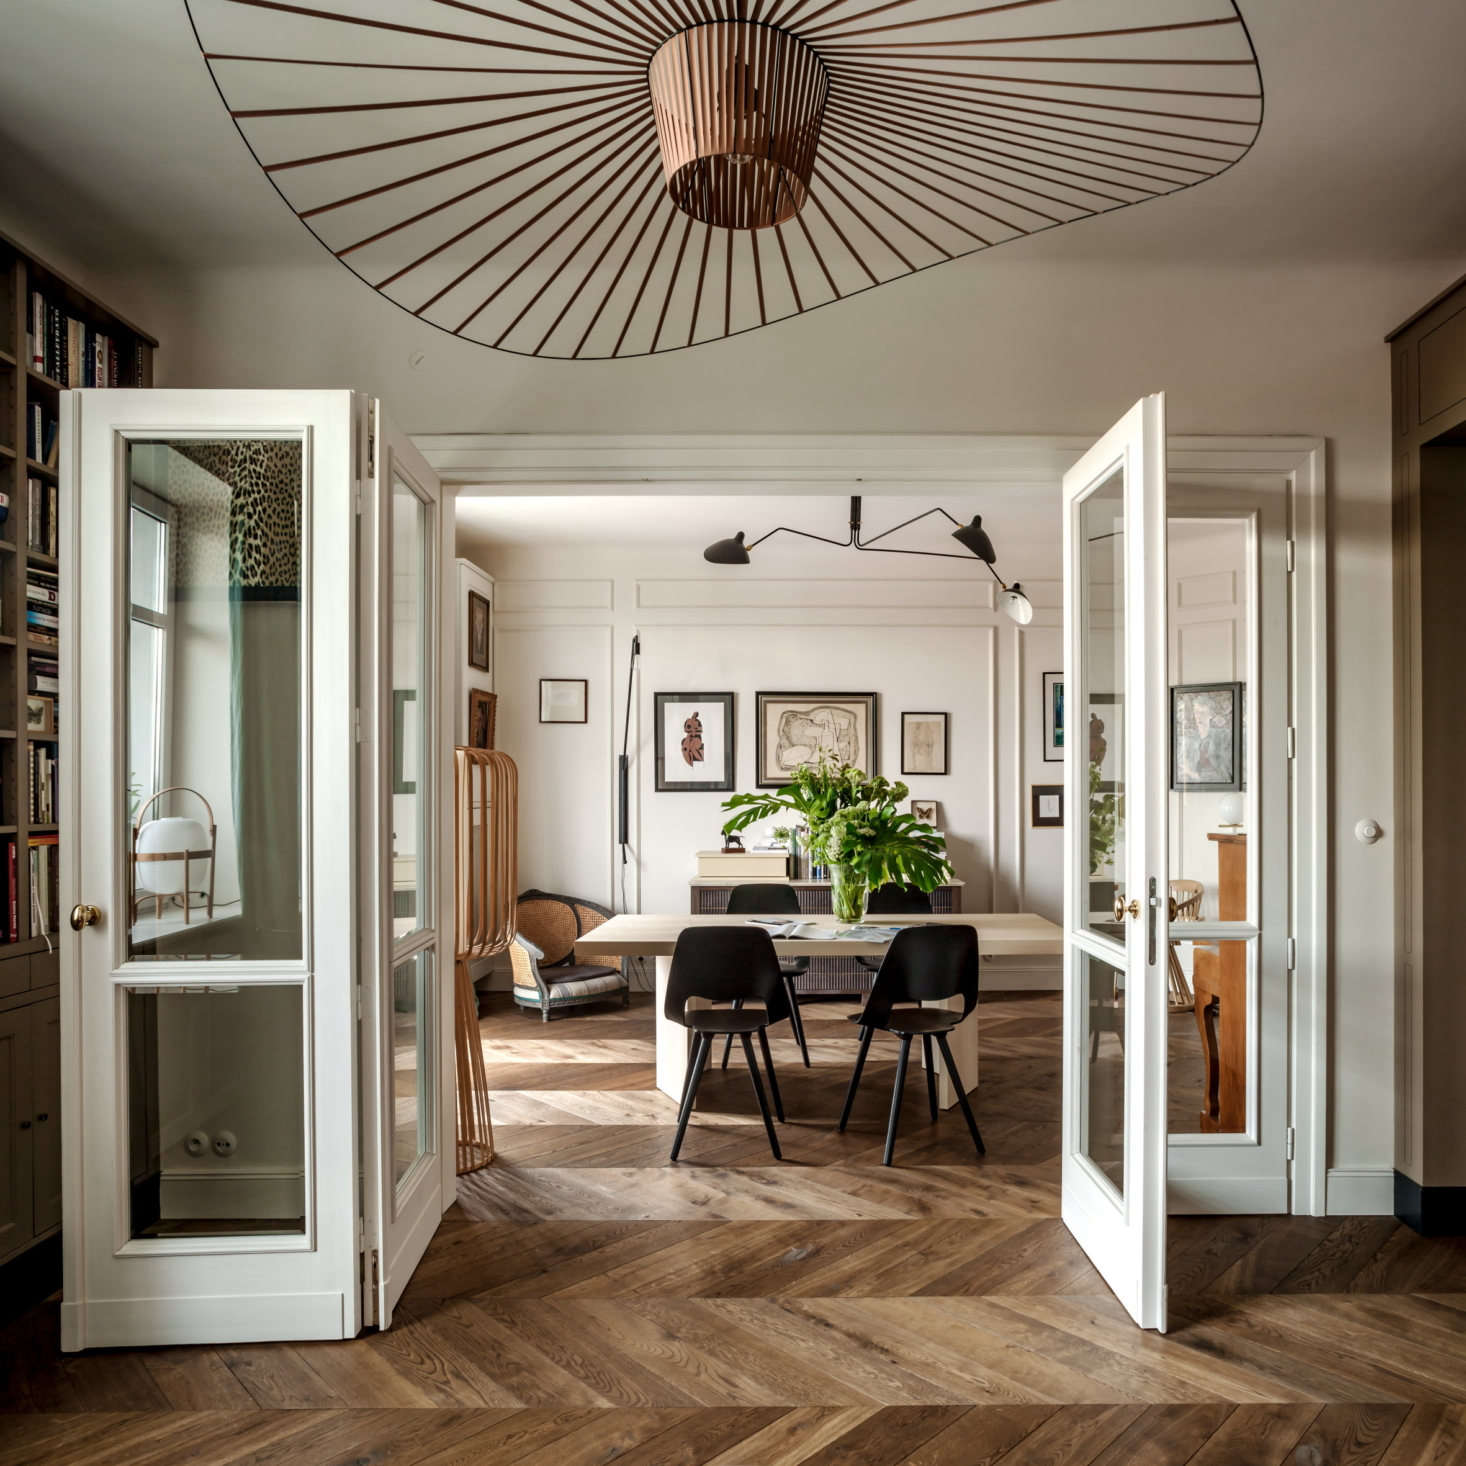 Chrapka designed the folding doors between the dining and living rooms. &#8